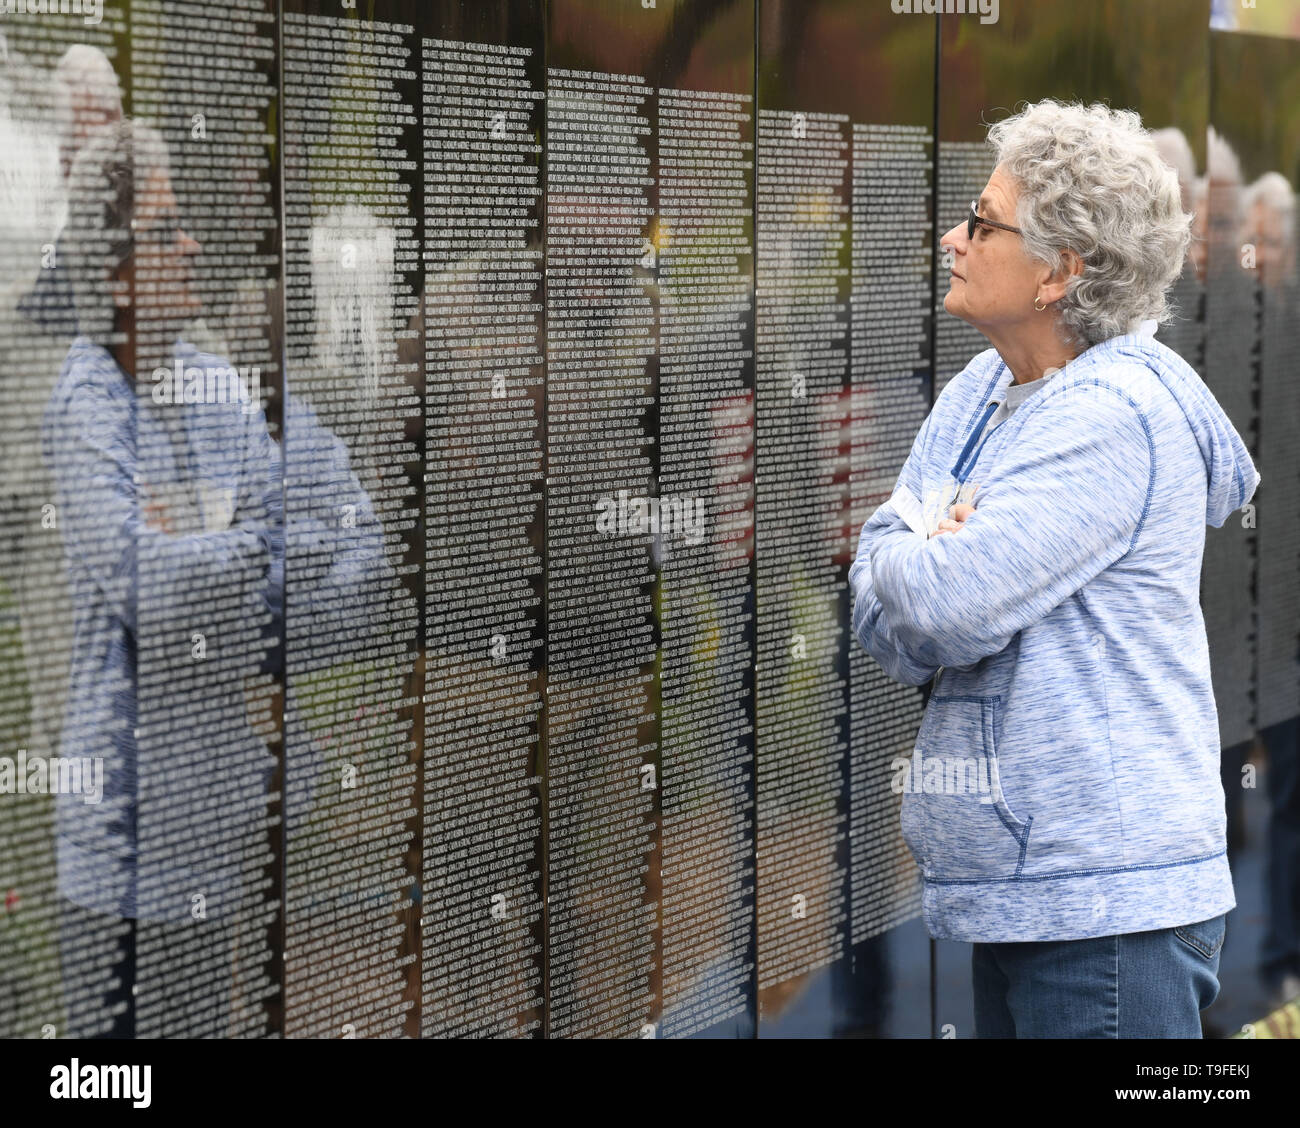 Racine, Wisconsin, USA. 18th May, 2019. LuAnn Tully, whose uncles served in Vietnam and survived the war, visits the Moving Wall, a half-size replica of the Vietnam Veterans Memorial, in Racine, Wisconsin, Saturday May 18, 2019. Forty-seven soldiers from Racine were killed during the war. The Moving Wall has been touring the United States for more than 30 years. Credit: Mark Hertzberg/ZUMA Wire/Alamy Live News - Stock Image